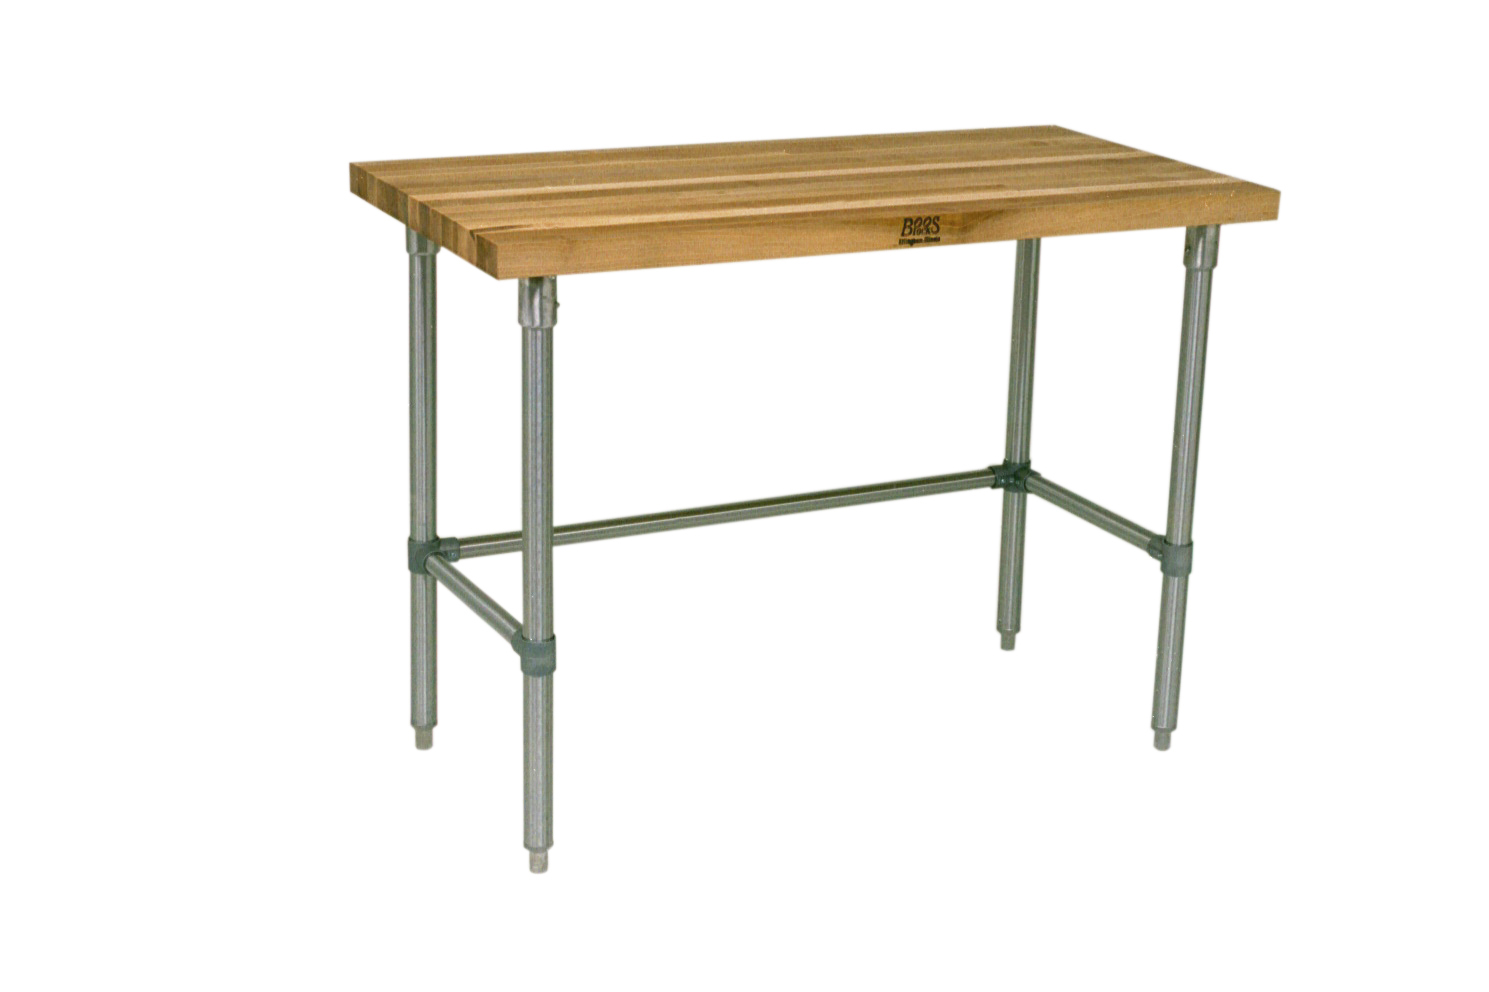 John Boos Thick Maple Top Work Table on Adjustable Galvanized Base, 60 x 24 Inch